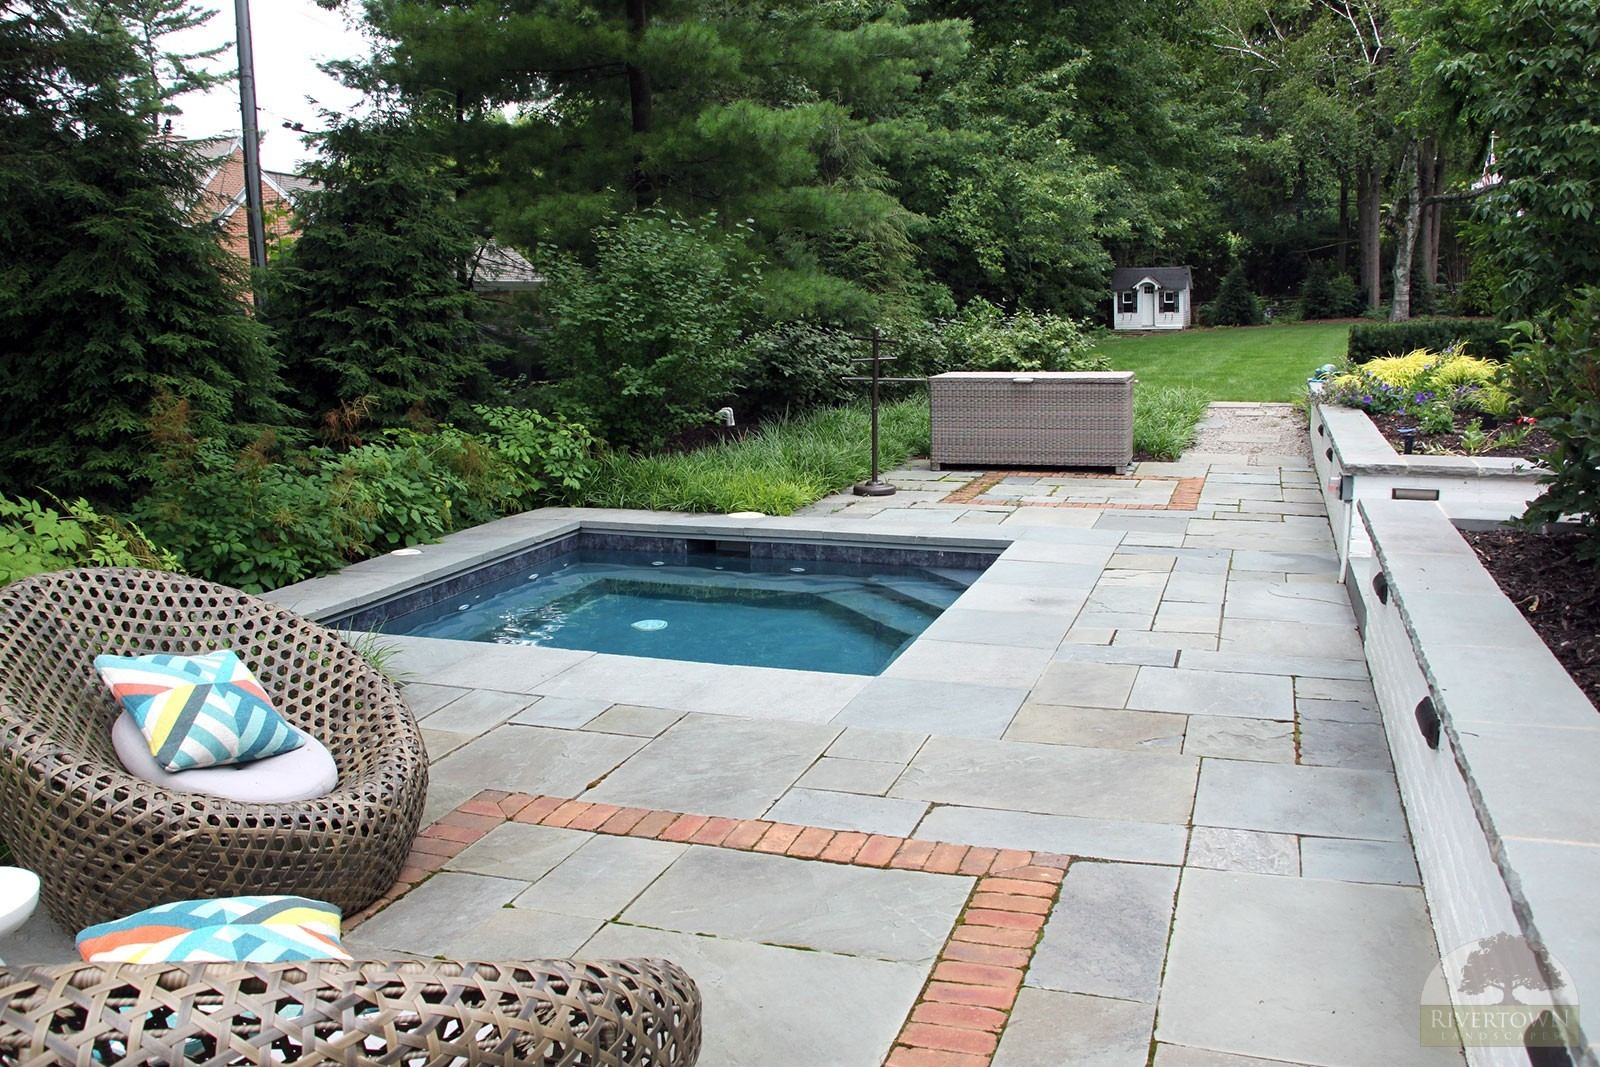 bluestone patio and spa